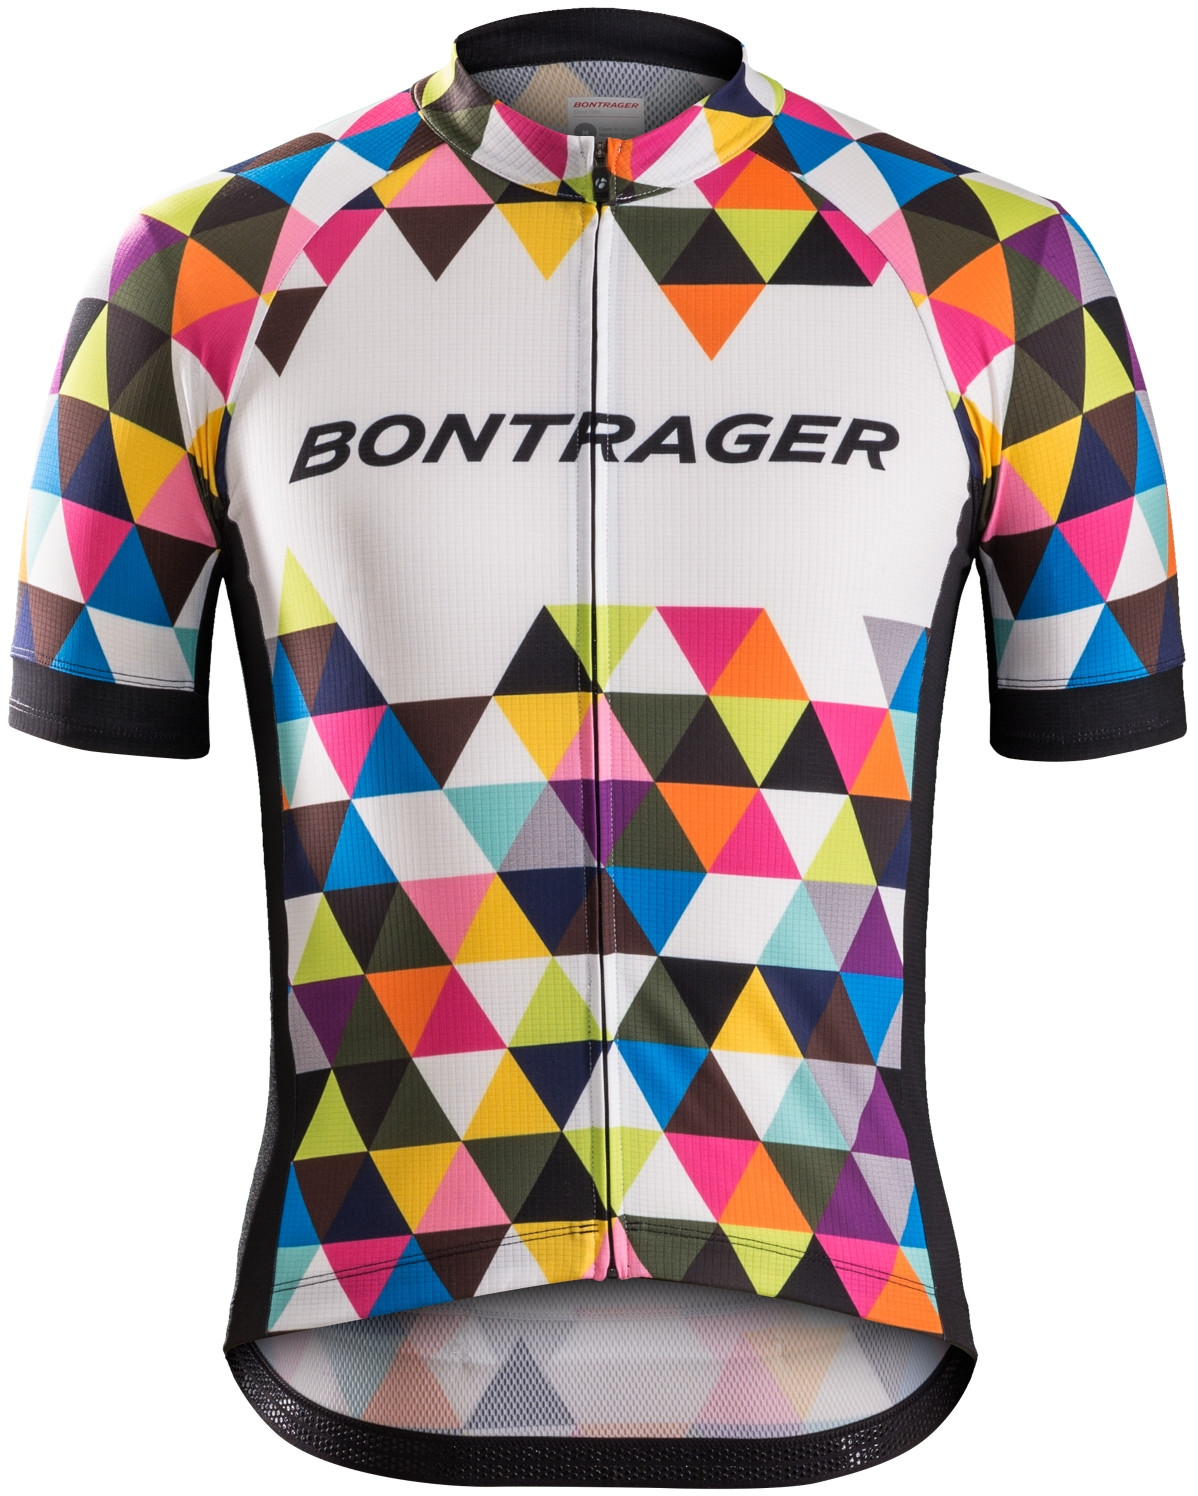 7a0bd4c38 Bontrager Specter Cycling Jersey - Men s - Jerseys - Clothing - Shop ...